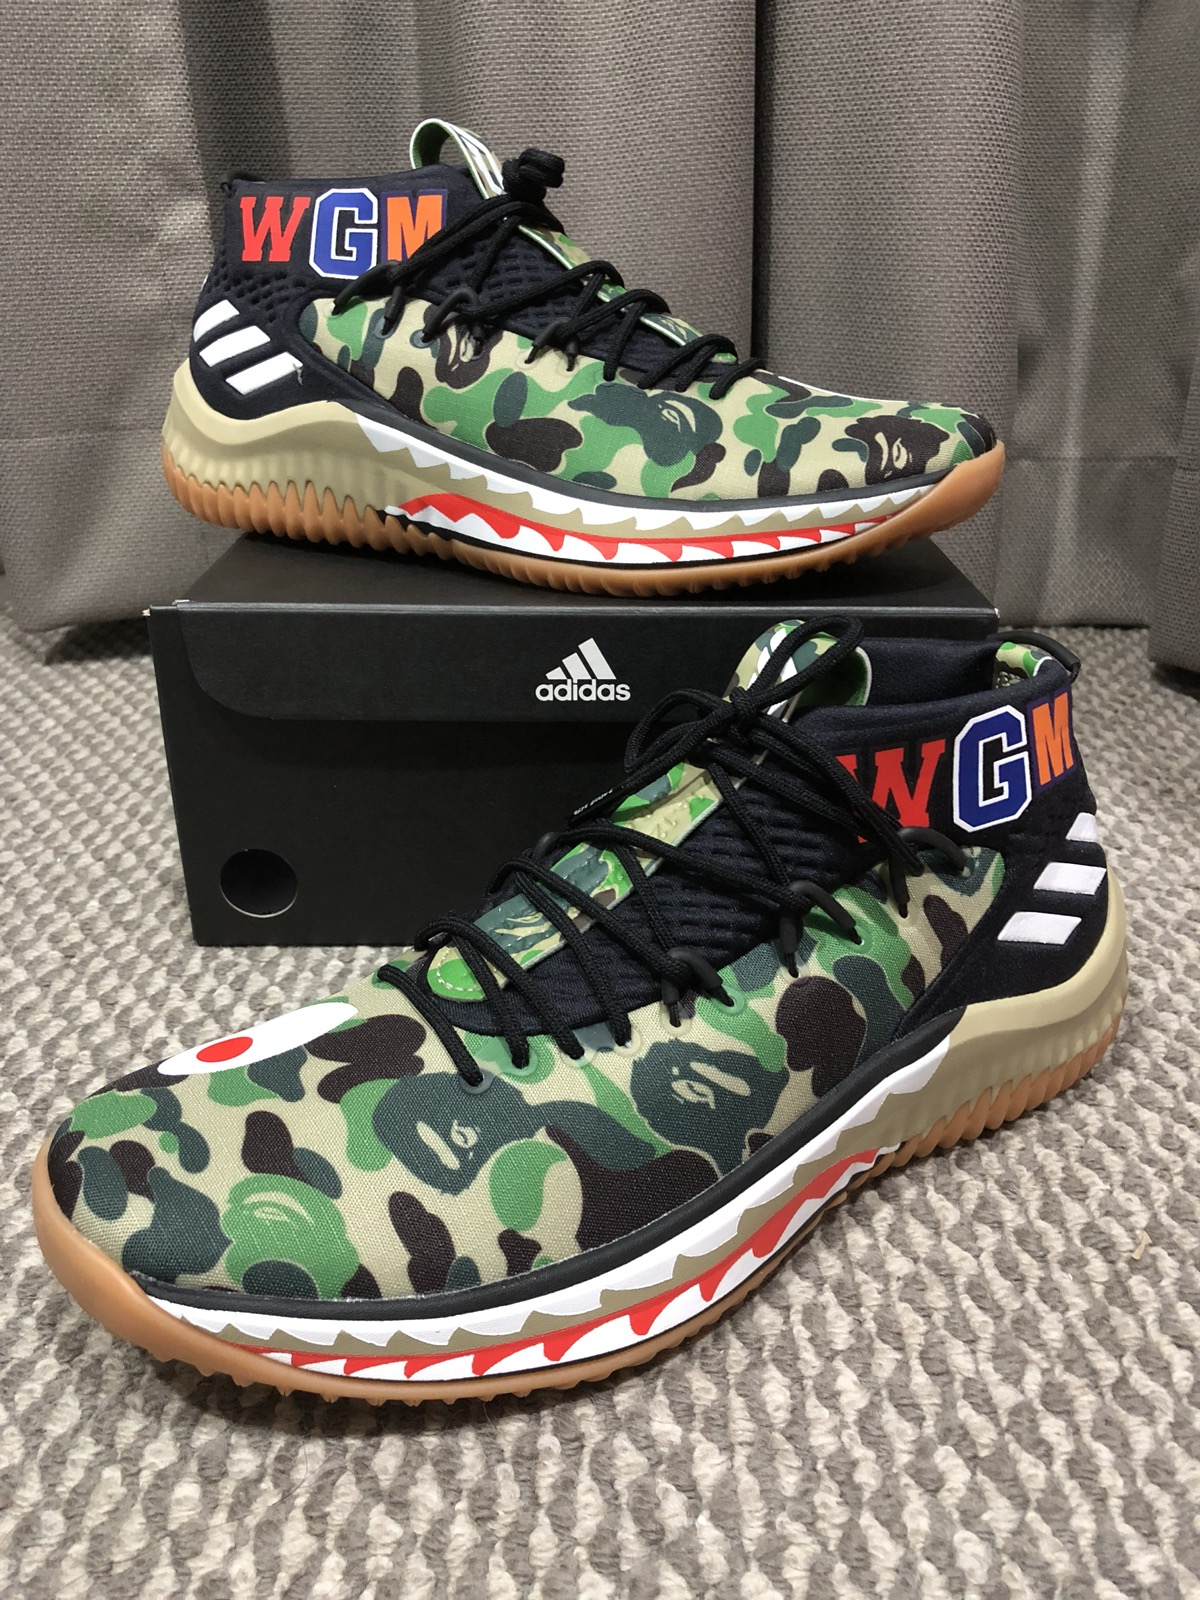 Adidas New Adidas X Bape Dame4 Damian Lillard Shoes Us9 5 Grailed